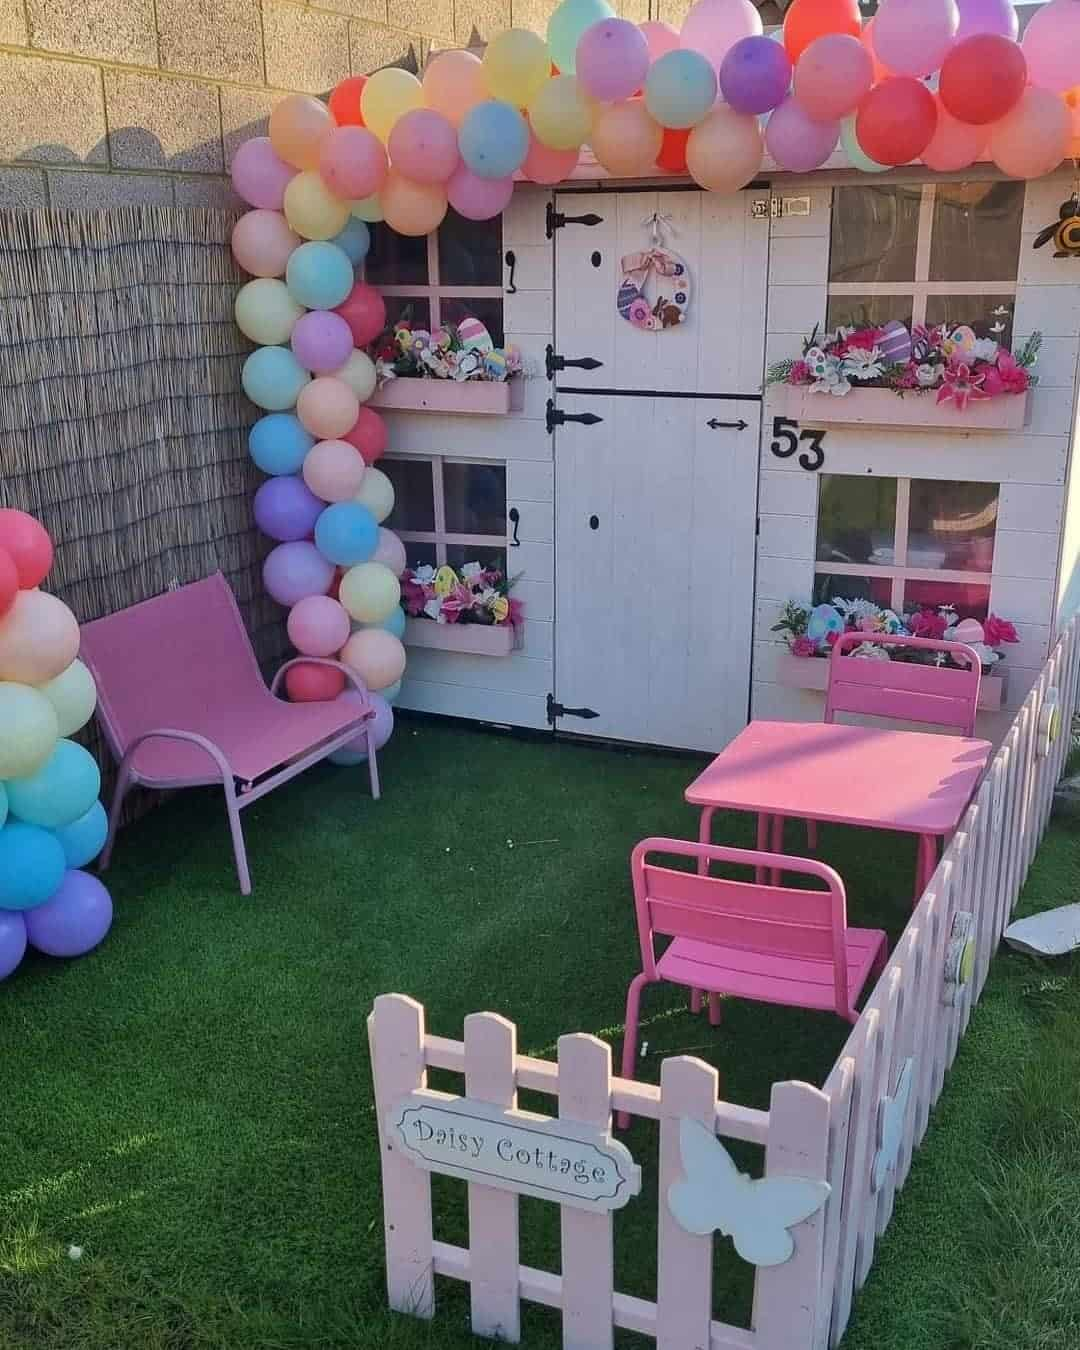 two storey barn door playhouse with picket fence painted white on astro turf with balloon arch around the door